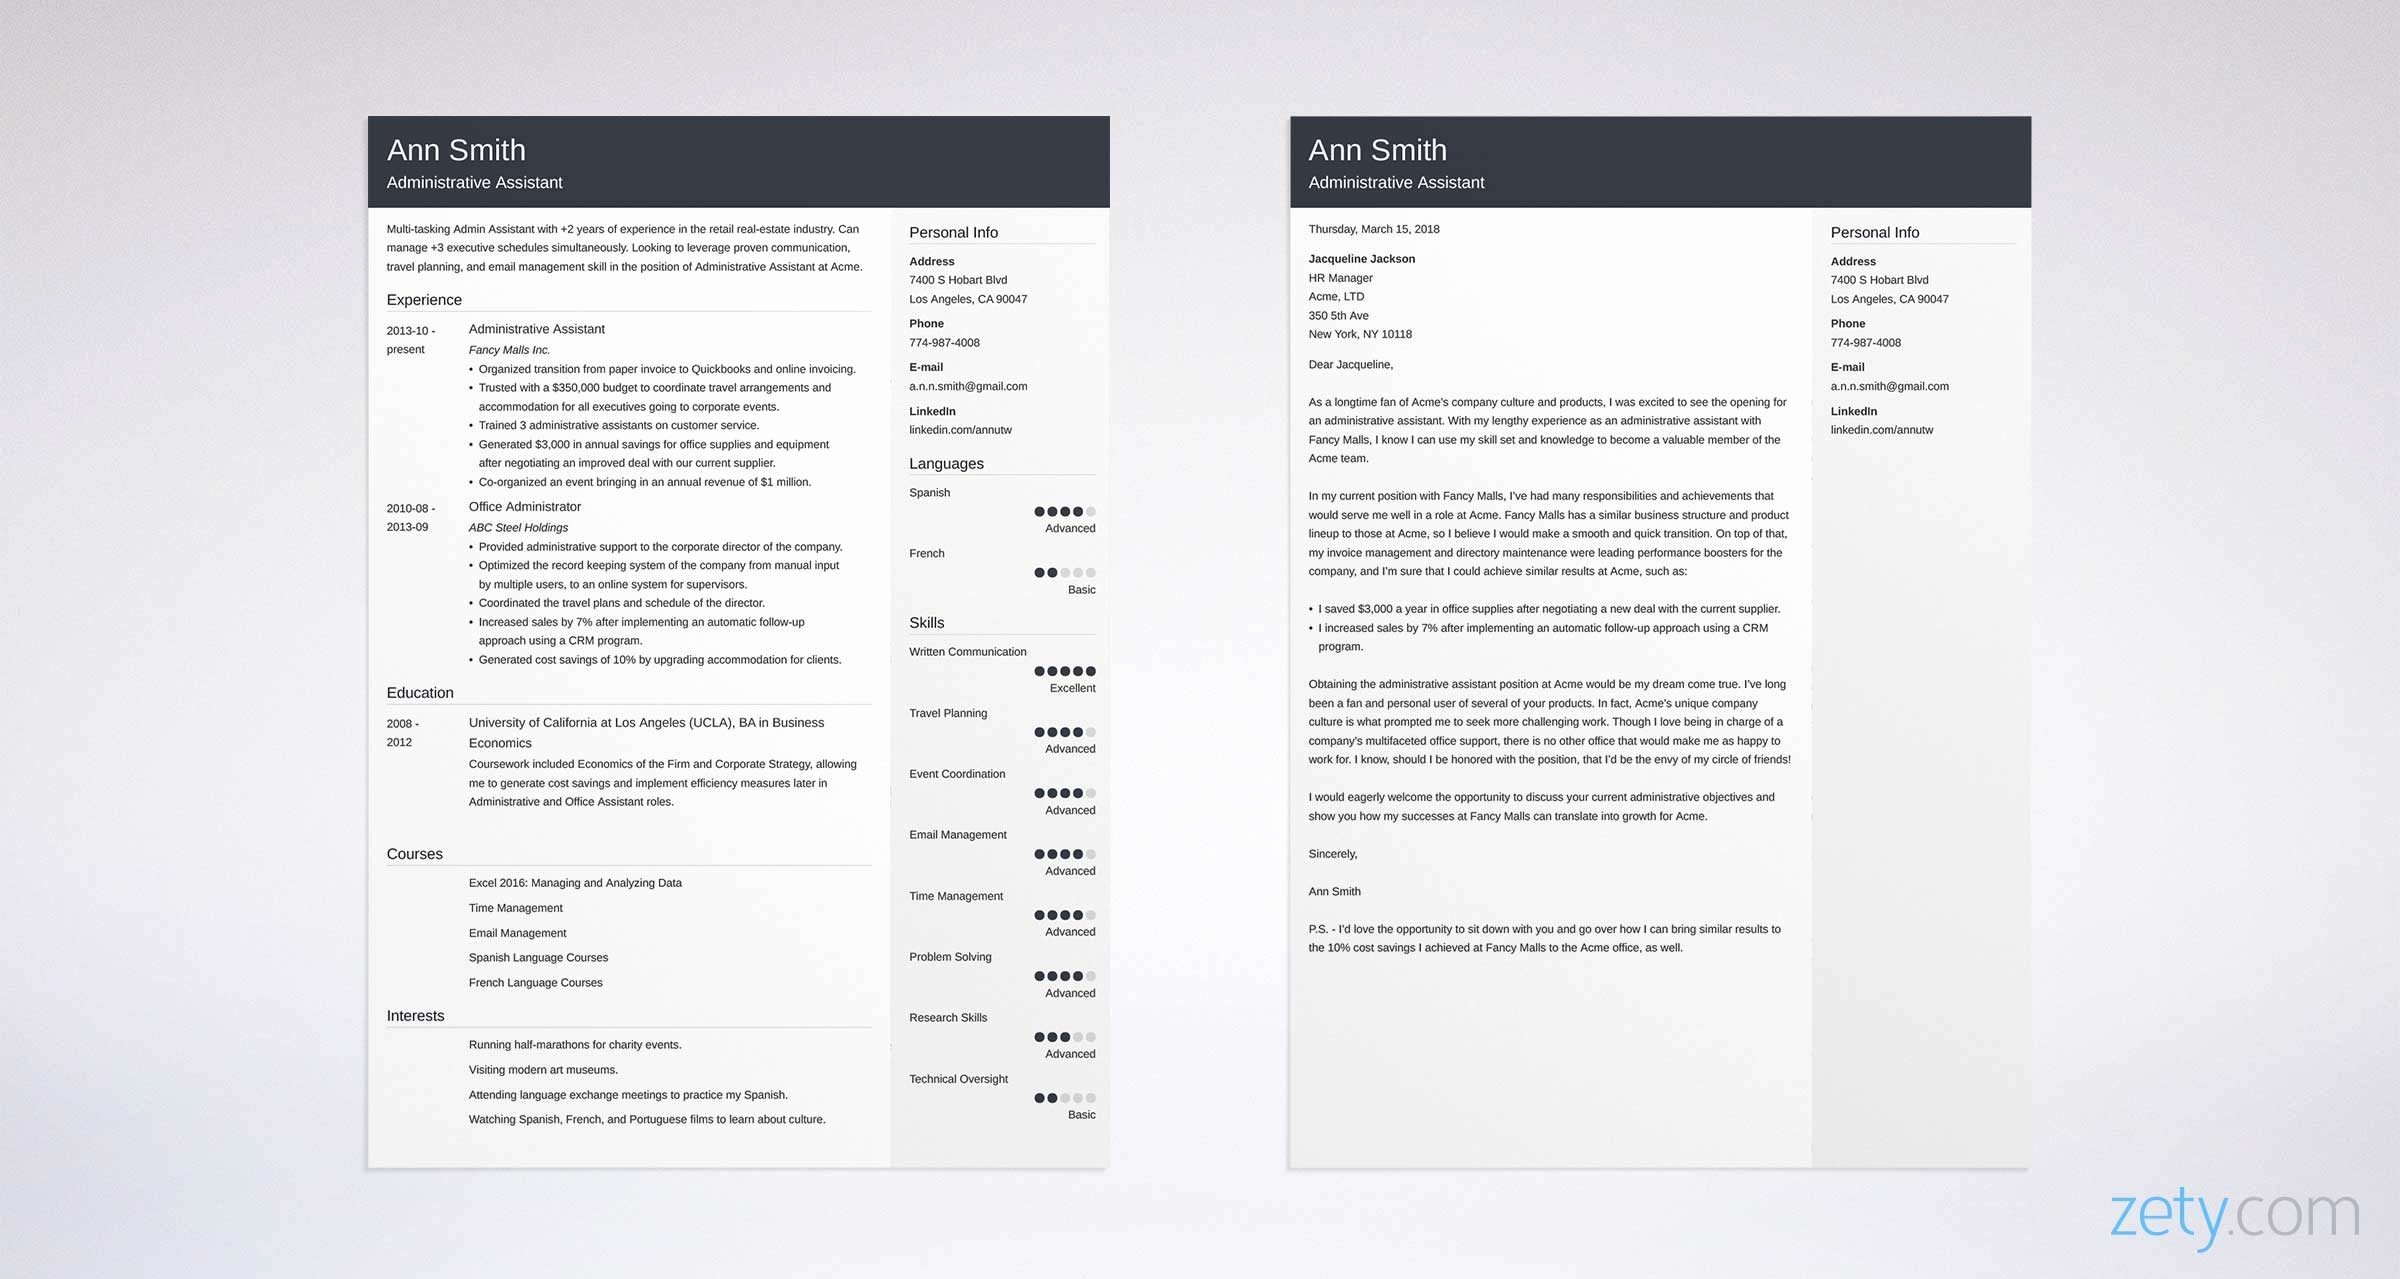 Administrative Support Cover Letter Unique Administrative assistant Cover Letter Sample & Guide [20